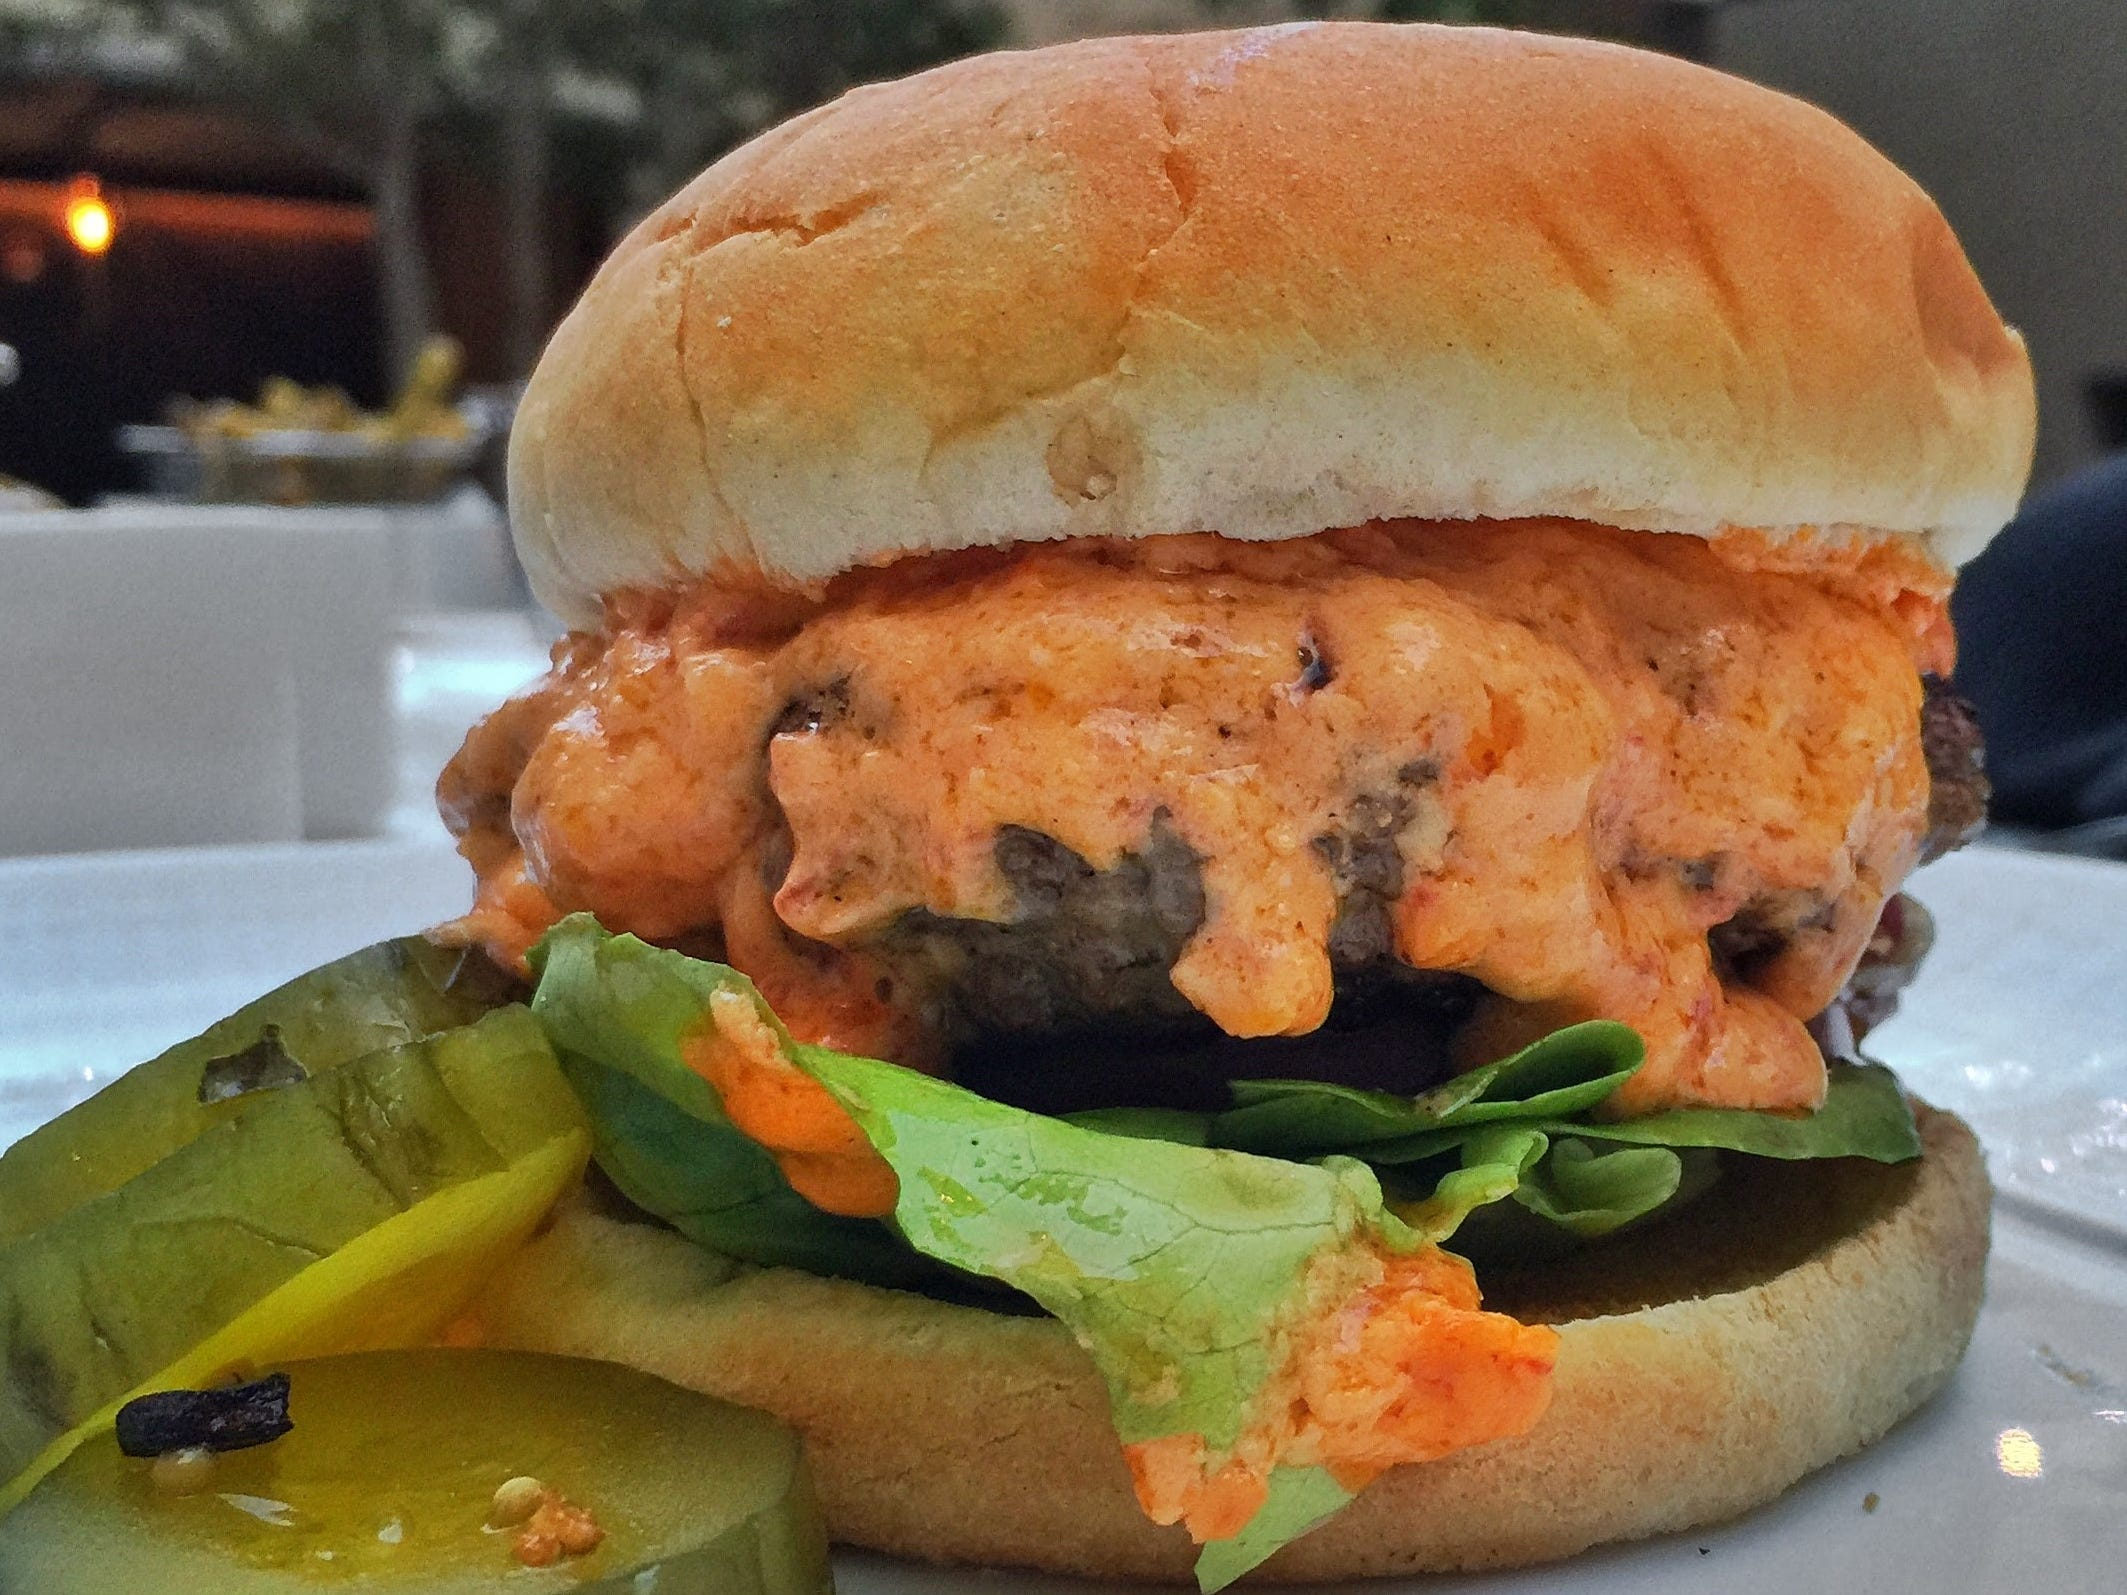 The Pimento Cheese Burger at Knife Burger was rated the best burger in Dallas by Texas Monthly magazine.